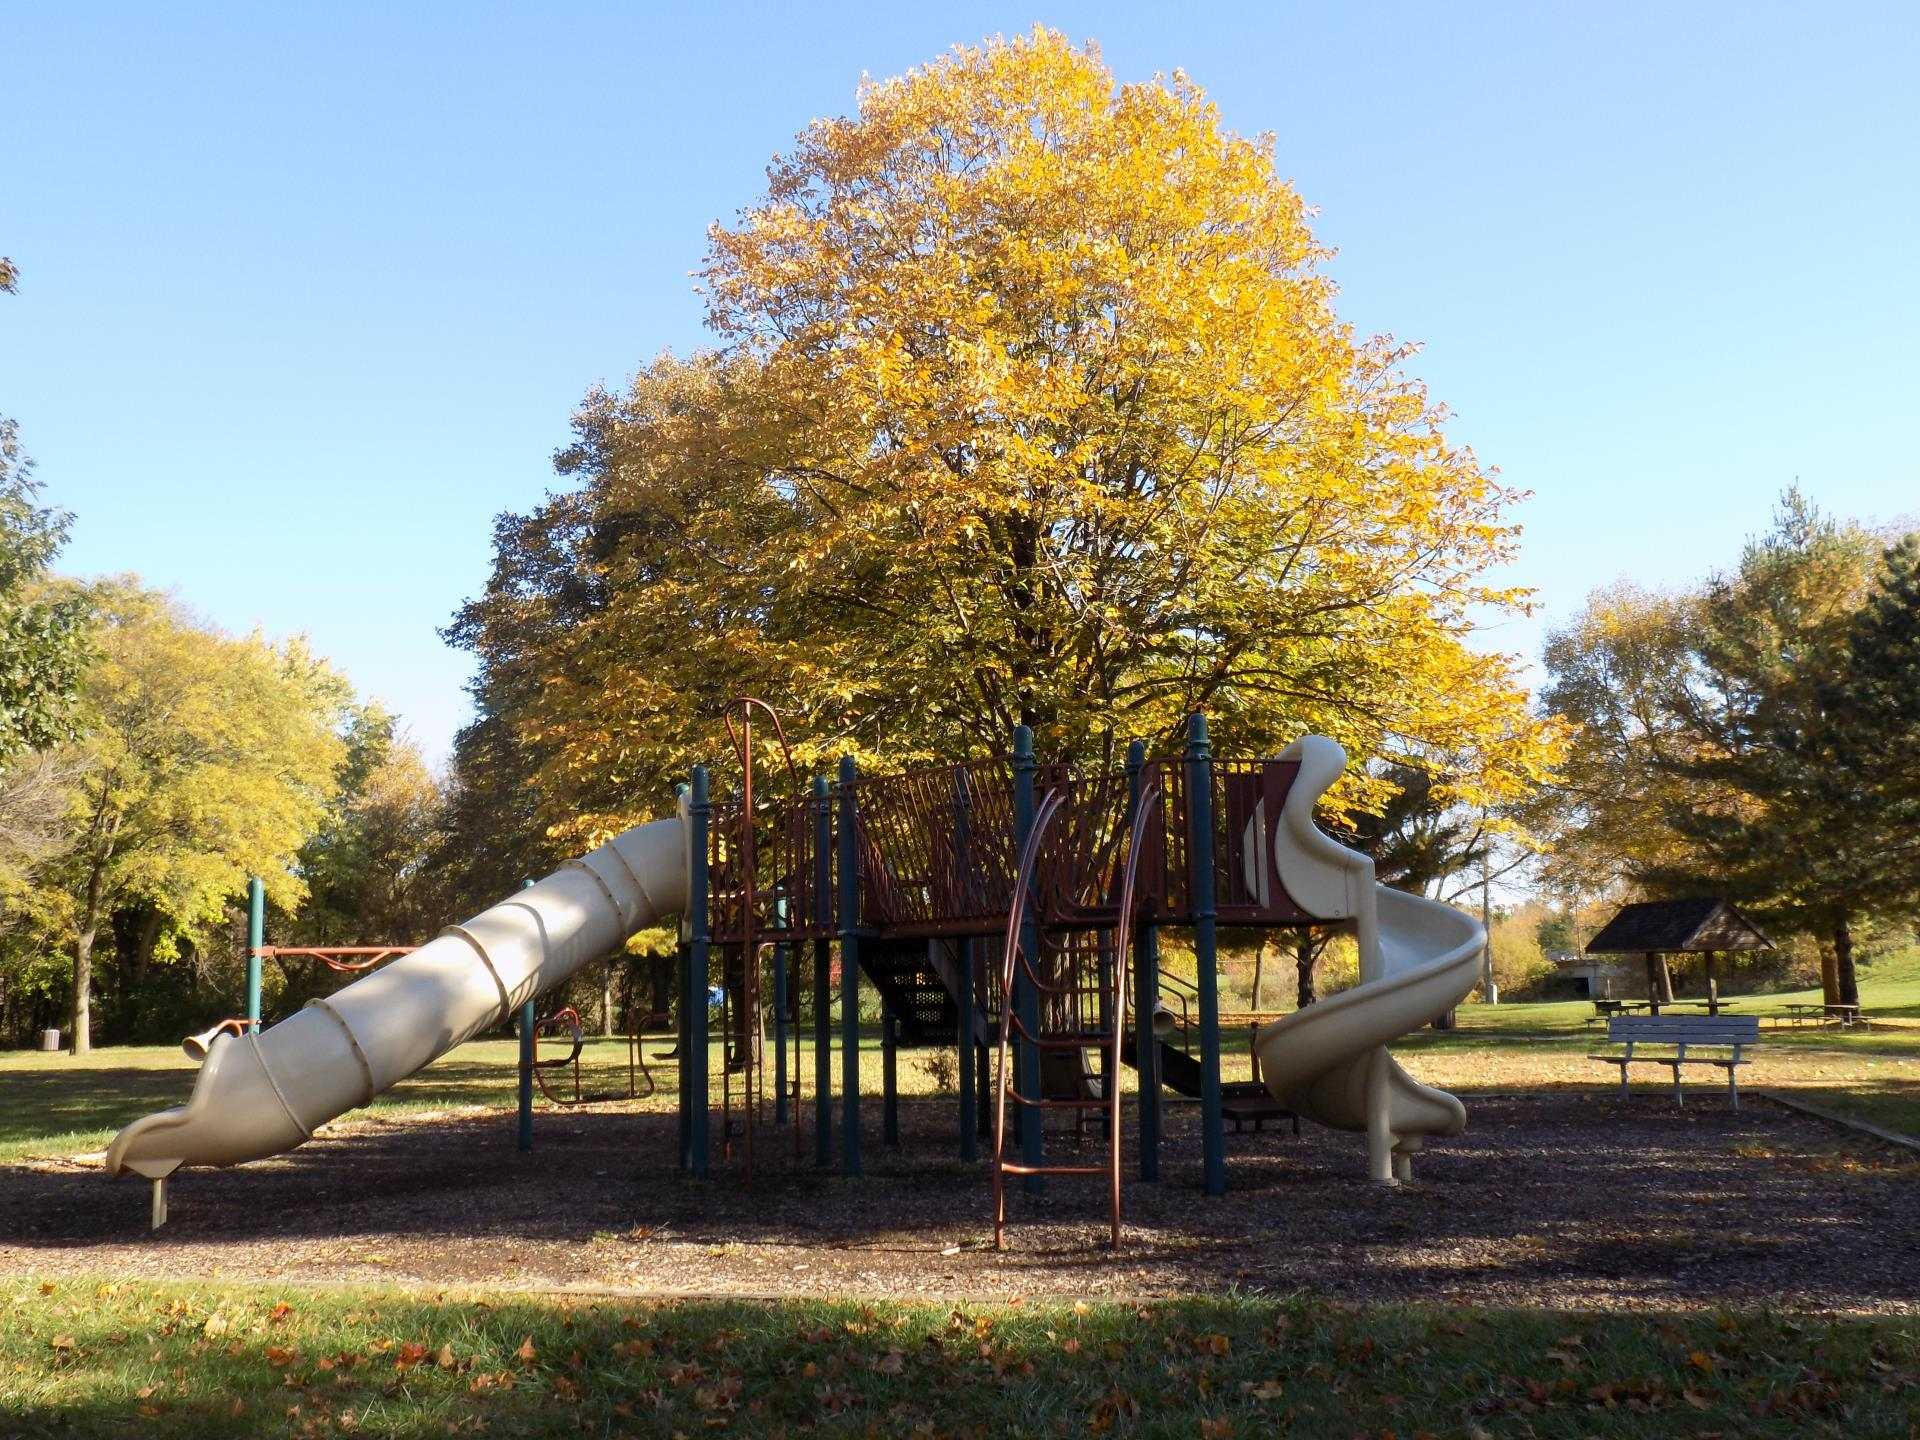 Playground equipment near a large tree at Stuart Smith park